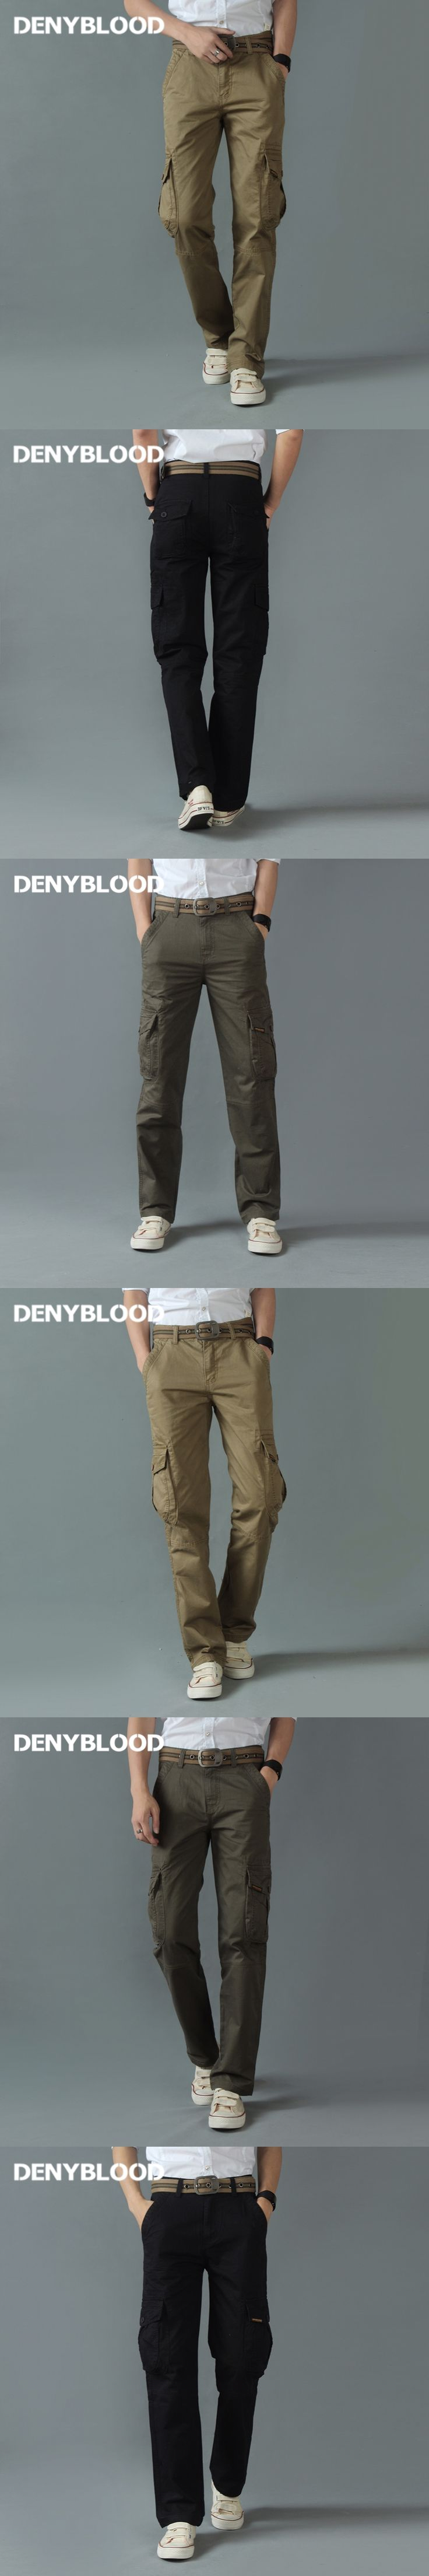 Denyblood Jeans Men Cargo Pants Chinos Army Green Military Casual Pants Cotton Twill Mutil Pocket Trousers Straight for Men 8329